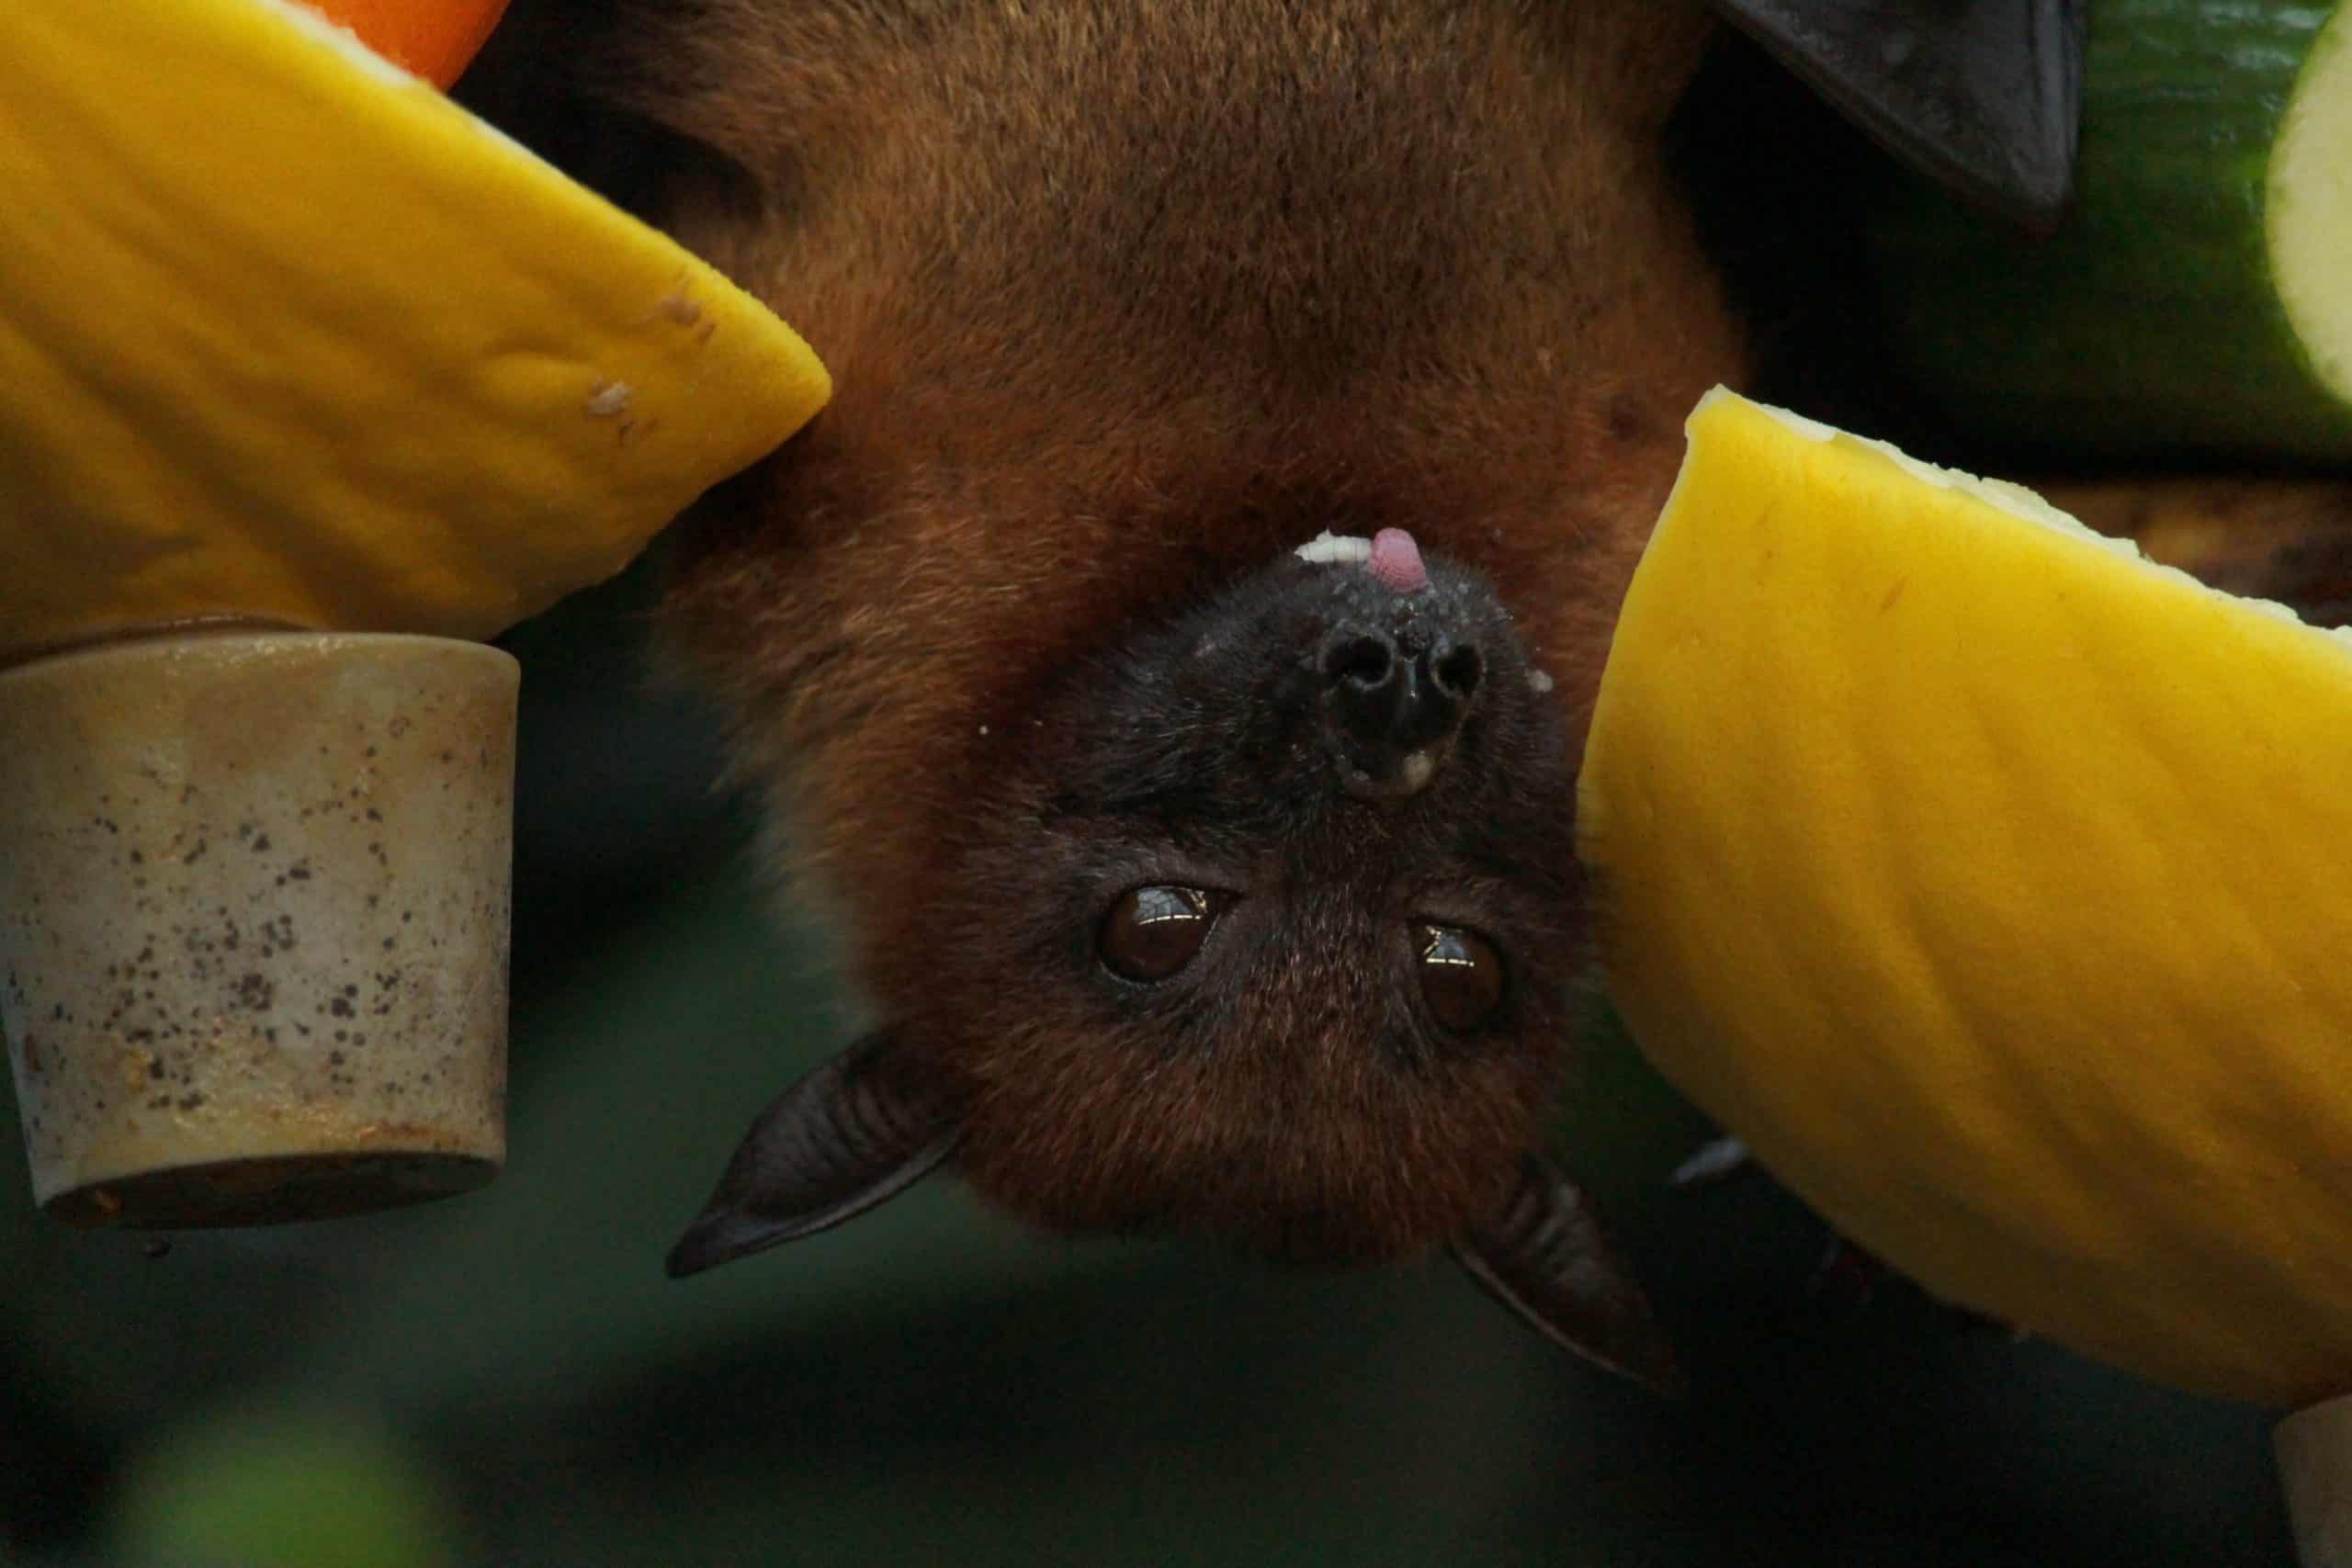 Covid-19 caused by bats